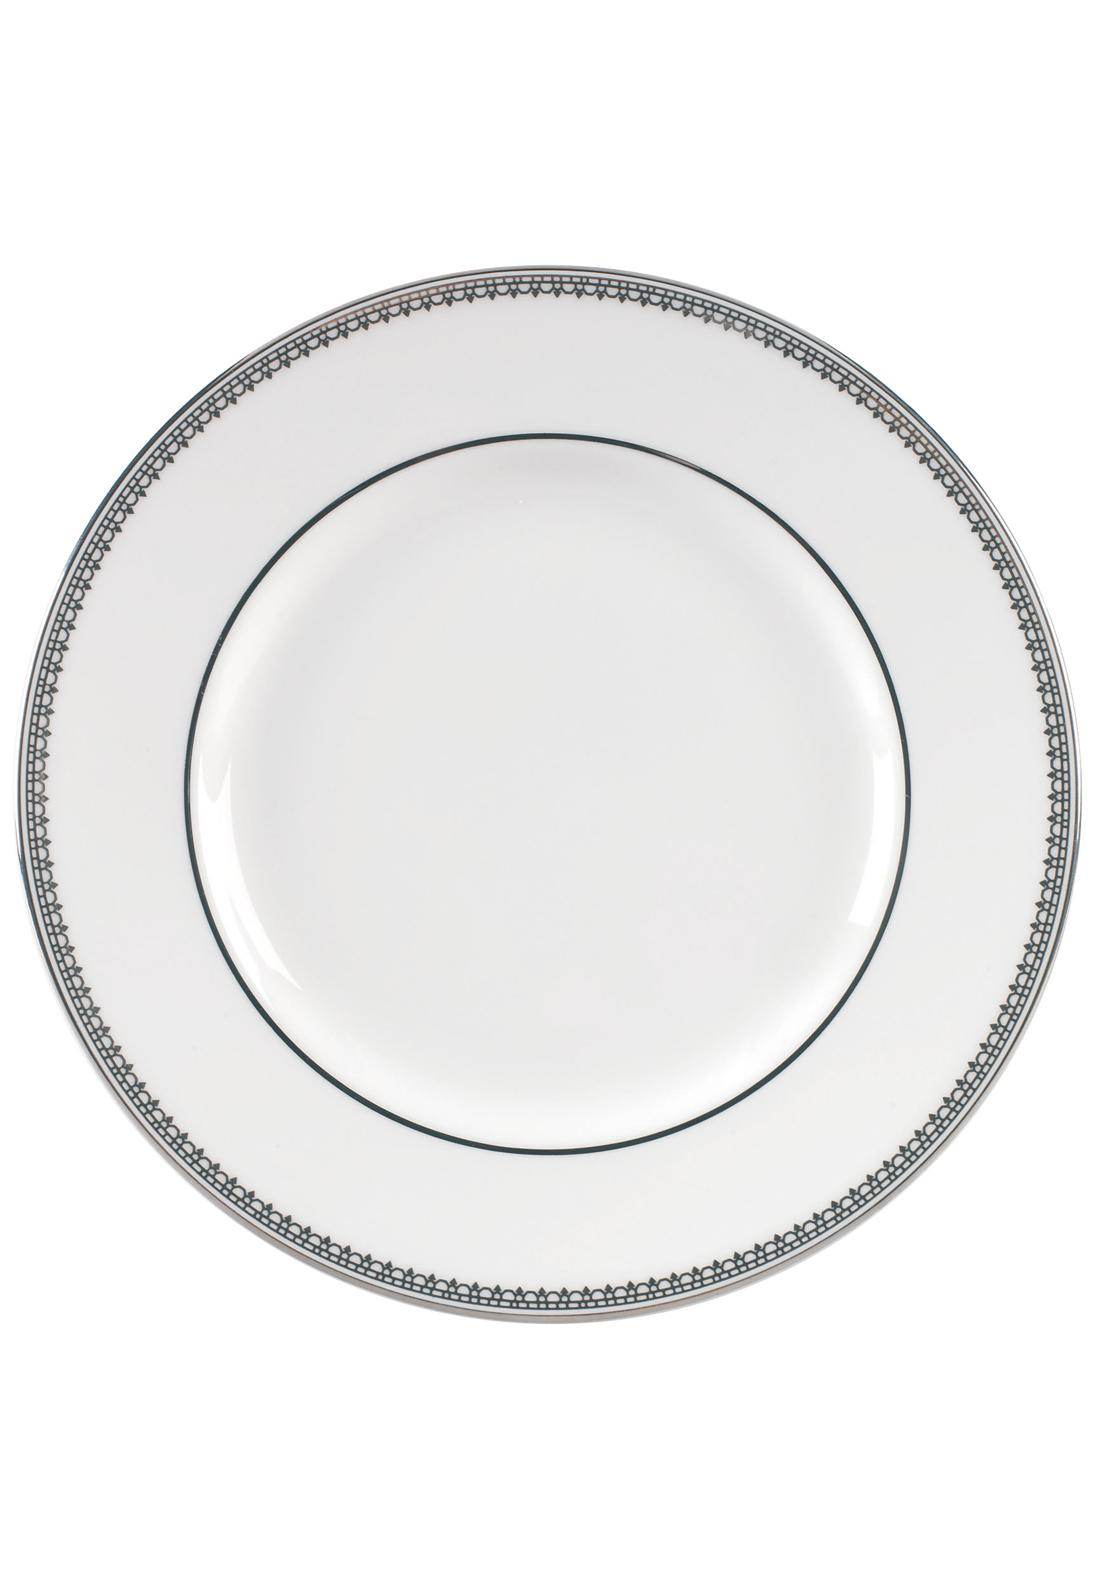 Vera Wang Wedgwood Lace Platinum Plate, 15cm